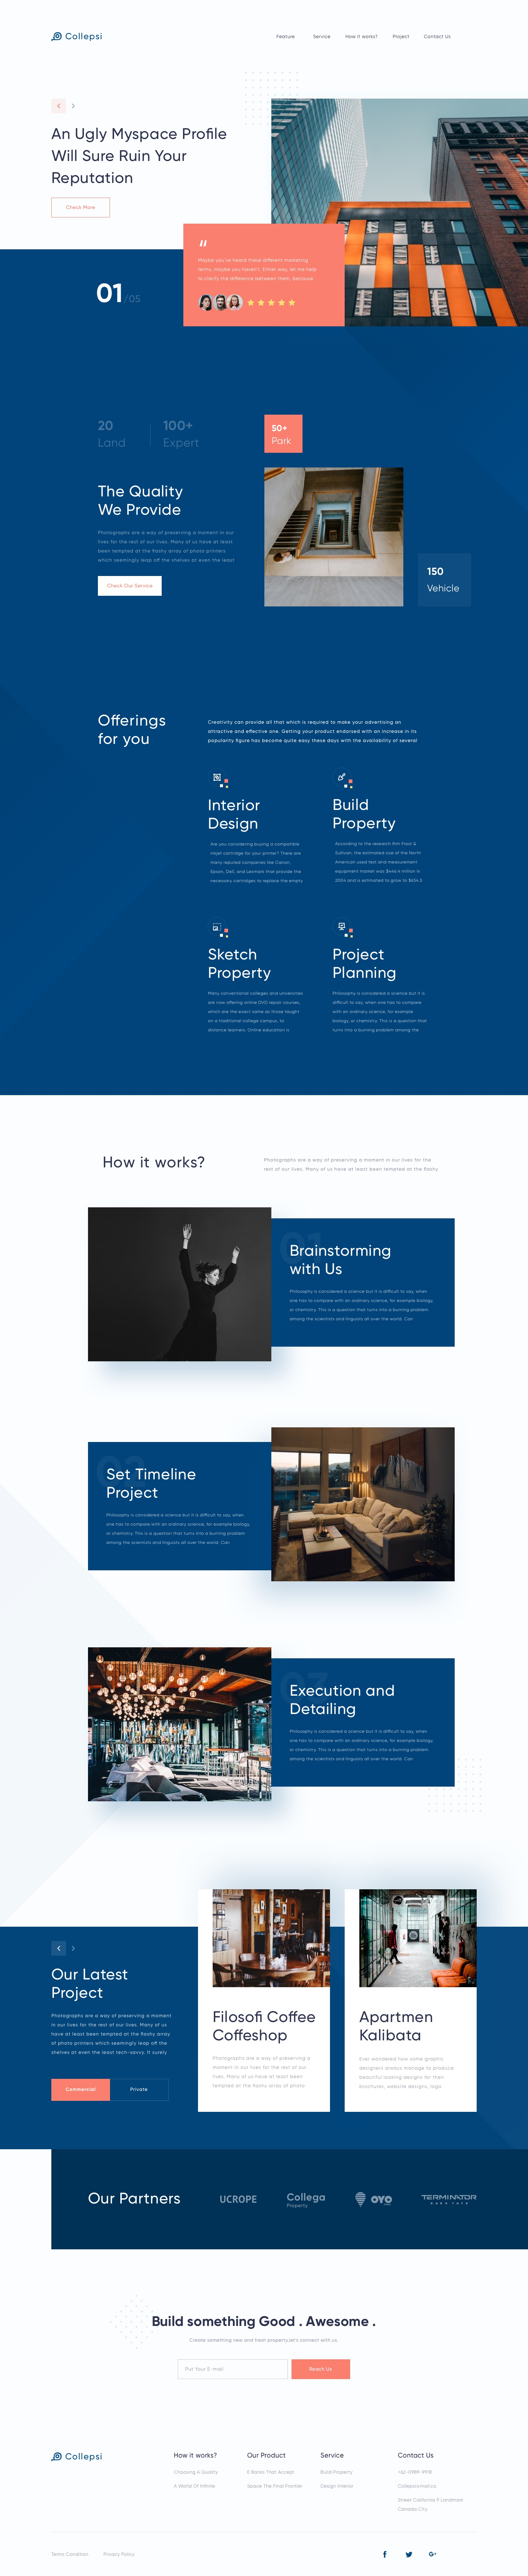 Home property full page